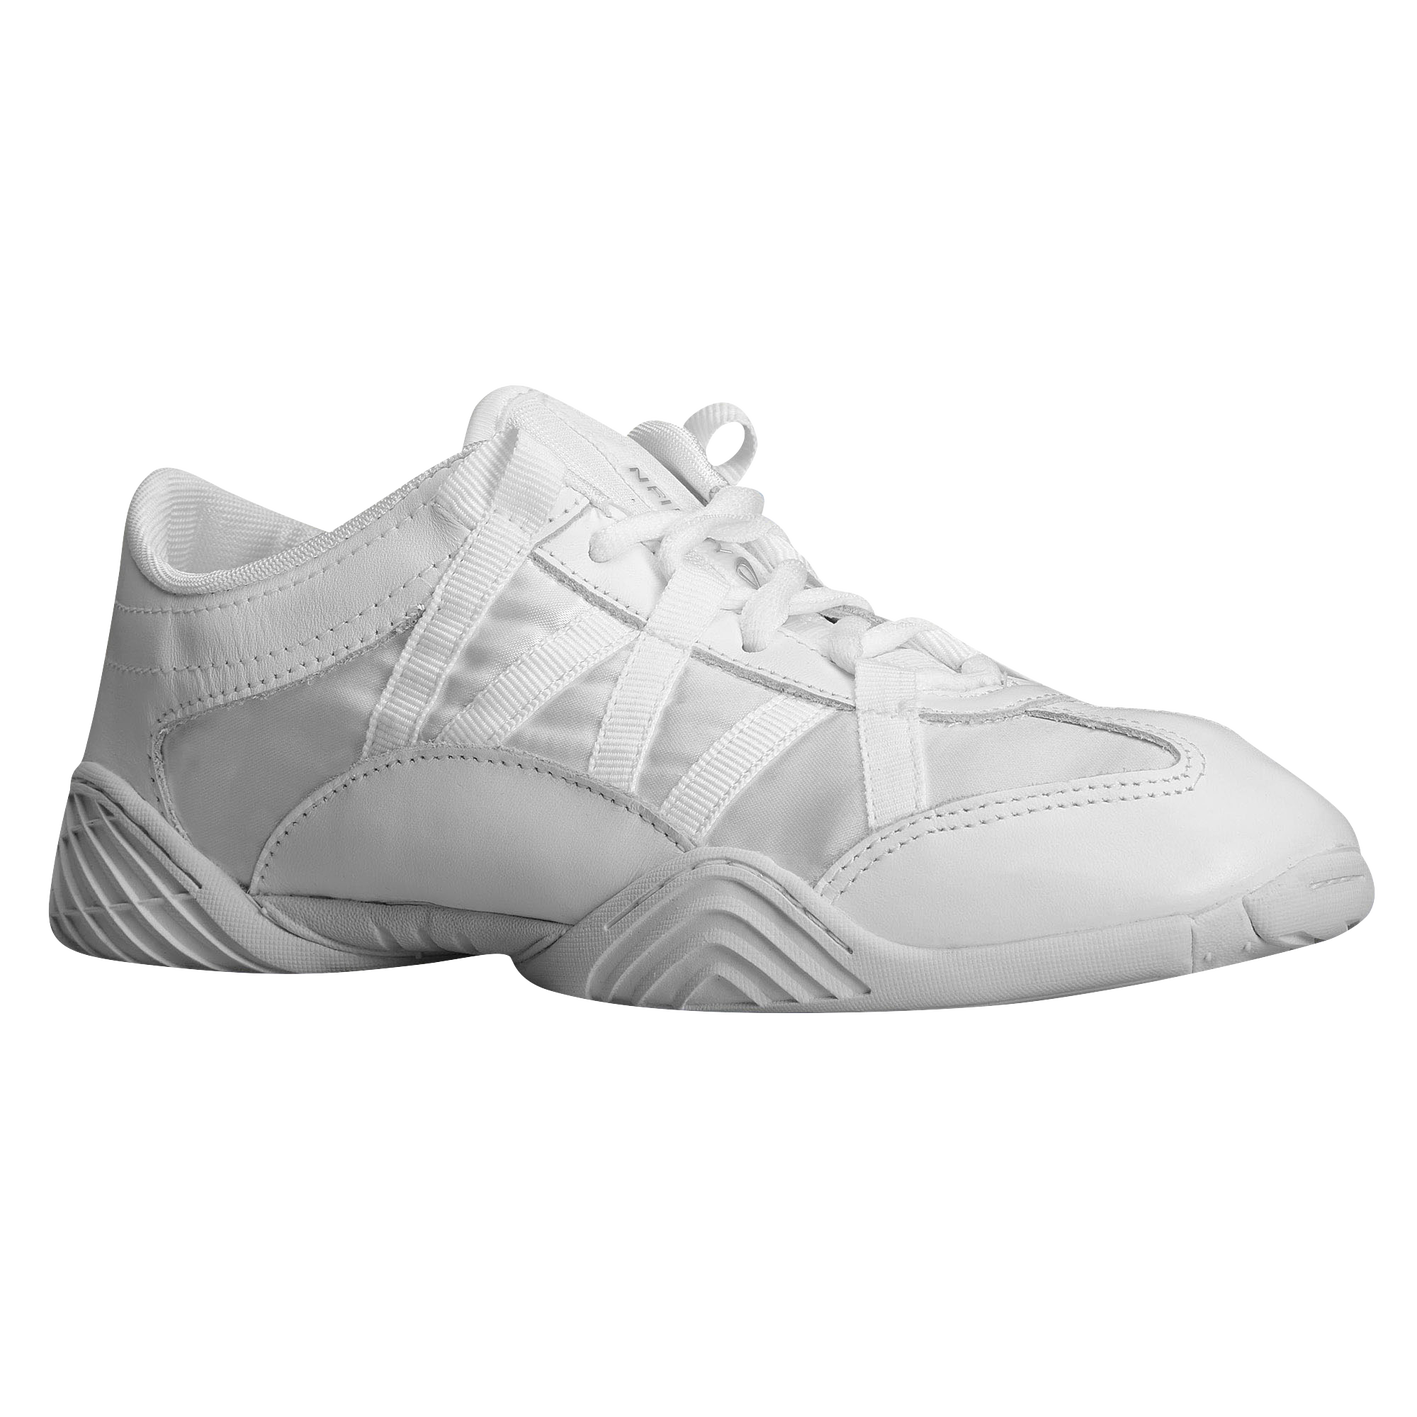 12b7149743a443 Nfinity Evolution Women S Cheer Shoes White. Nfinity Rival Shoe